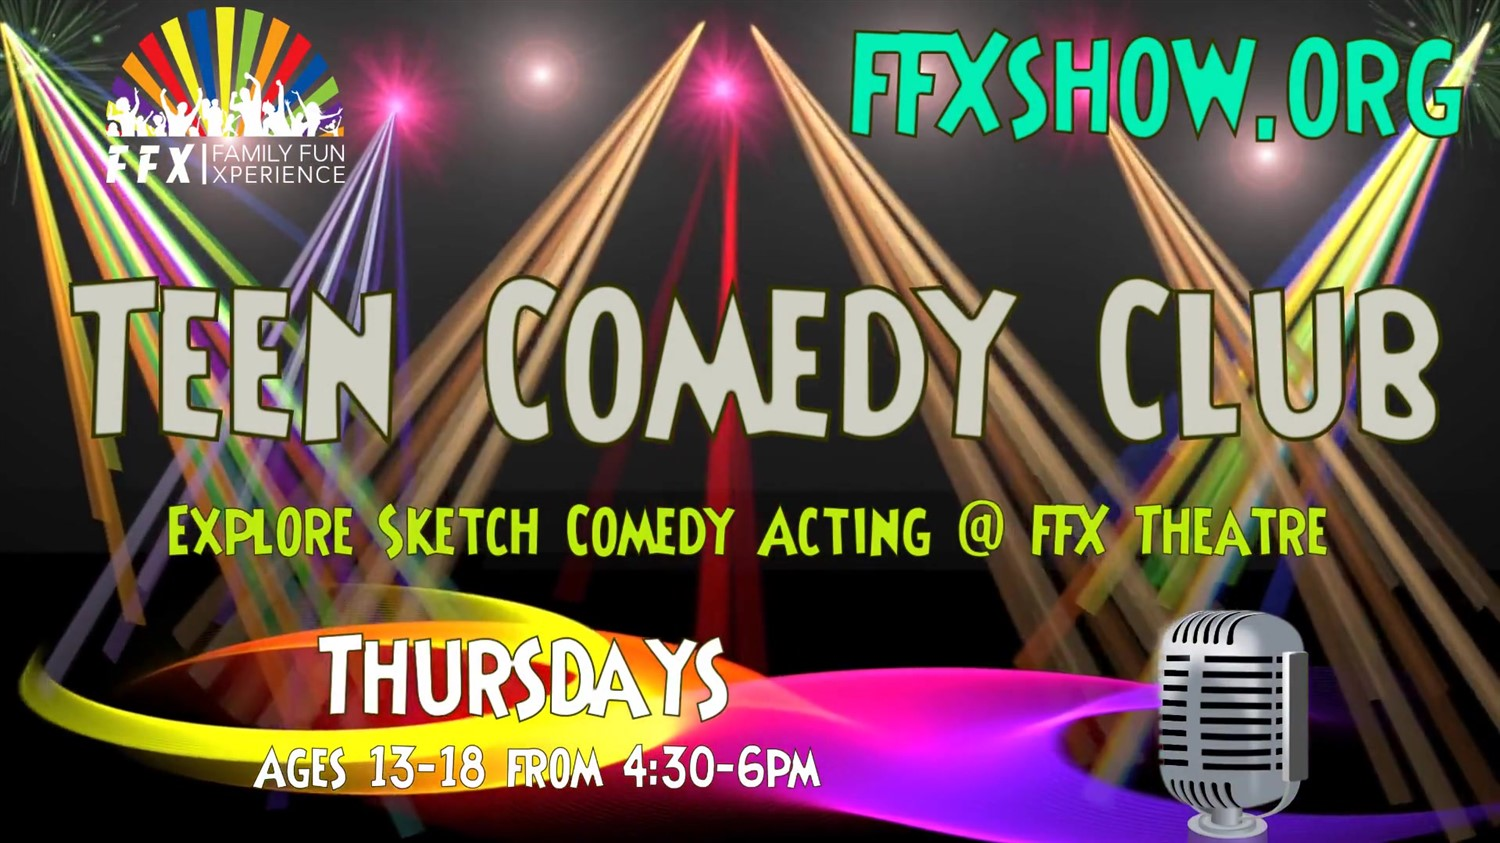 Teen Comedy Club Ages 13-18 make it FUN! on Dec 22, 00:00@FFX Theatre - Buy tickets and Get information on Family Fun Xperience tickets.ffxshow.org